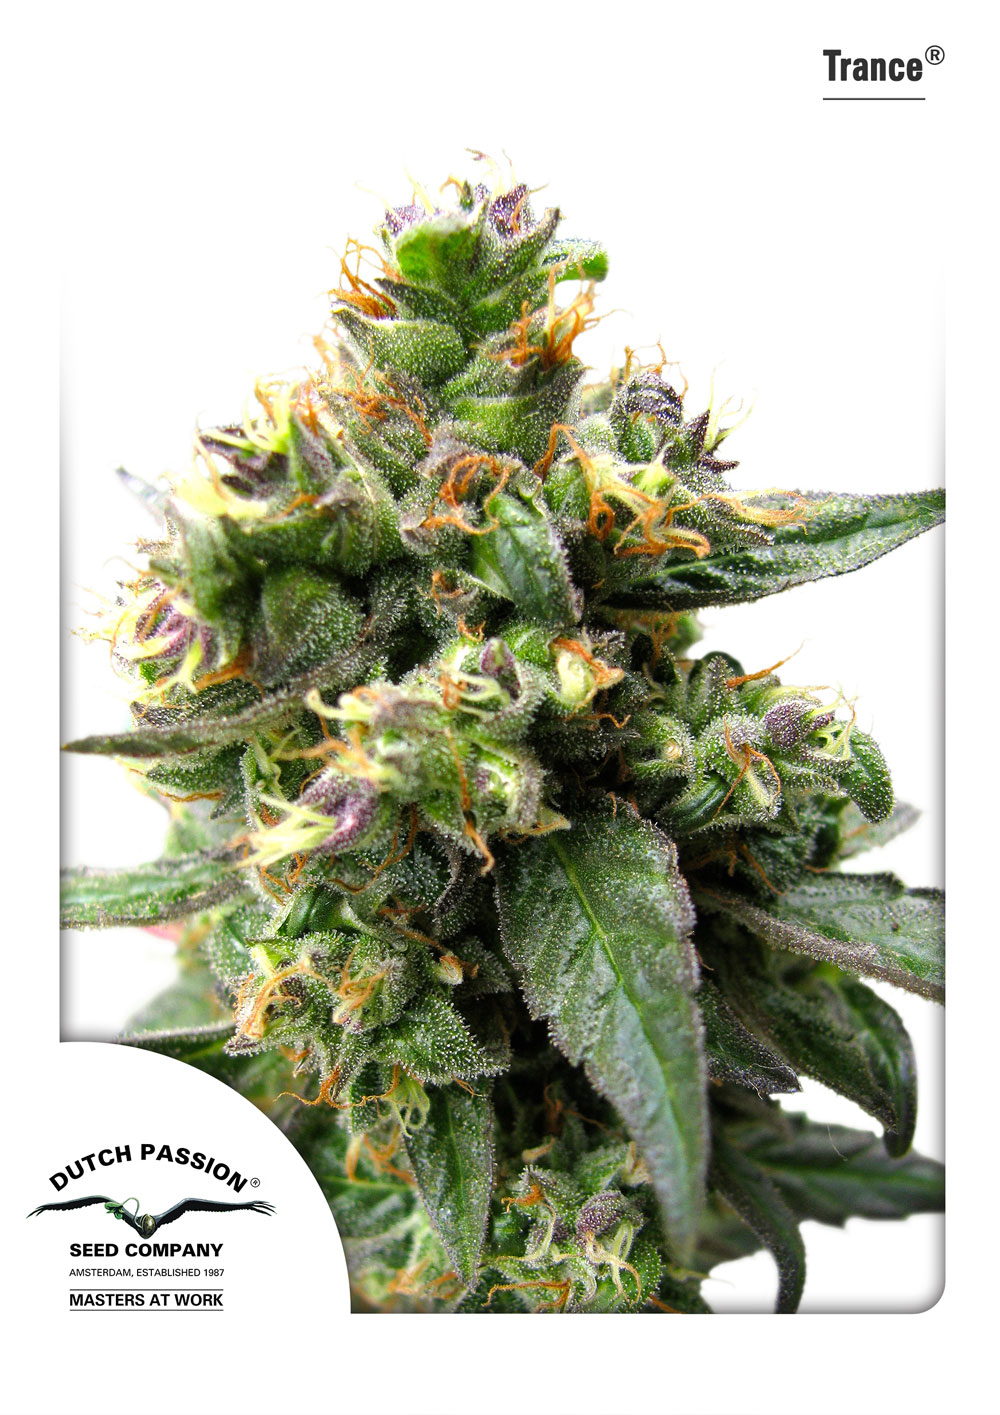 Recenzja Odmiany Trance od Dutch Passion, Dutch Seeds